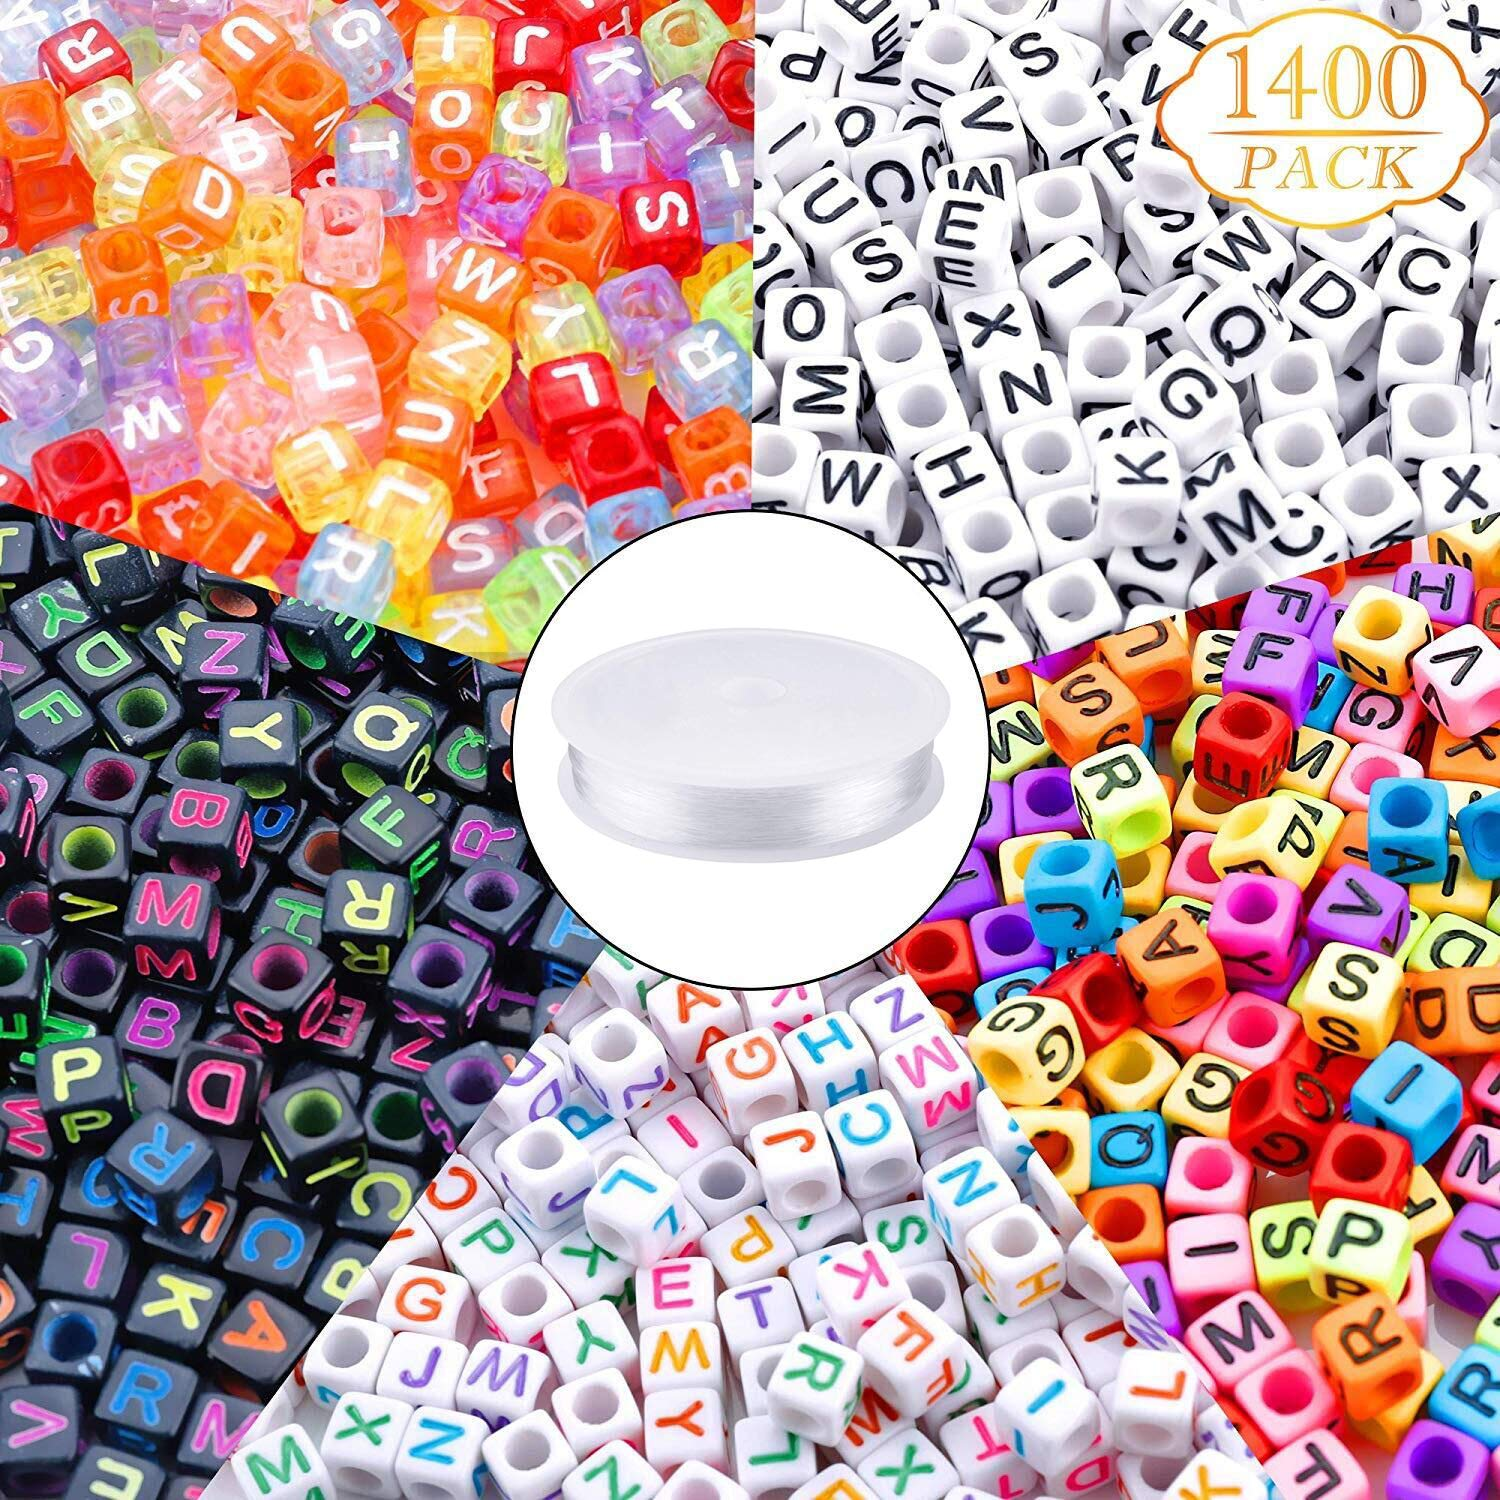 1400pcs 5 Color Acrylic Alphabet Cube Beads Letter Beads with 1 Roll 50M Crystal String Cord for Jewelry Making(6mm) by Augshy